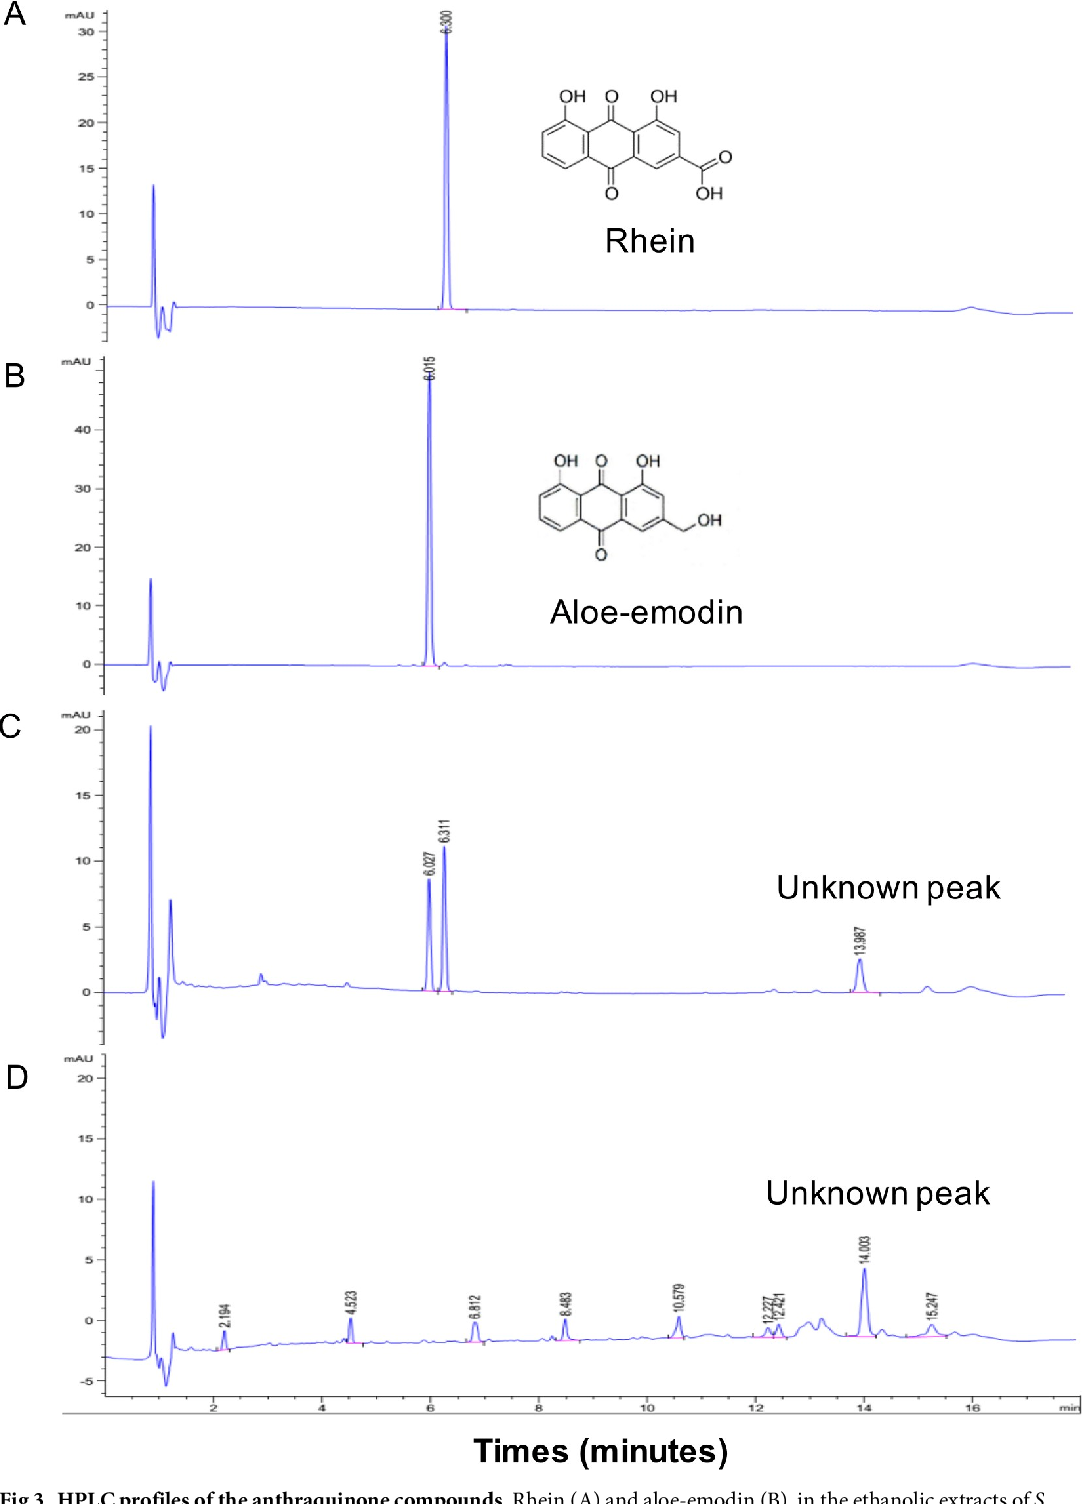 Fig 3. HPLC profiles of the anthraquinone compounds. Rhein (A) and aloe-emodin (B), in the ethanolic extracts of S. alata (C) and S. tora (D).